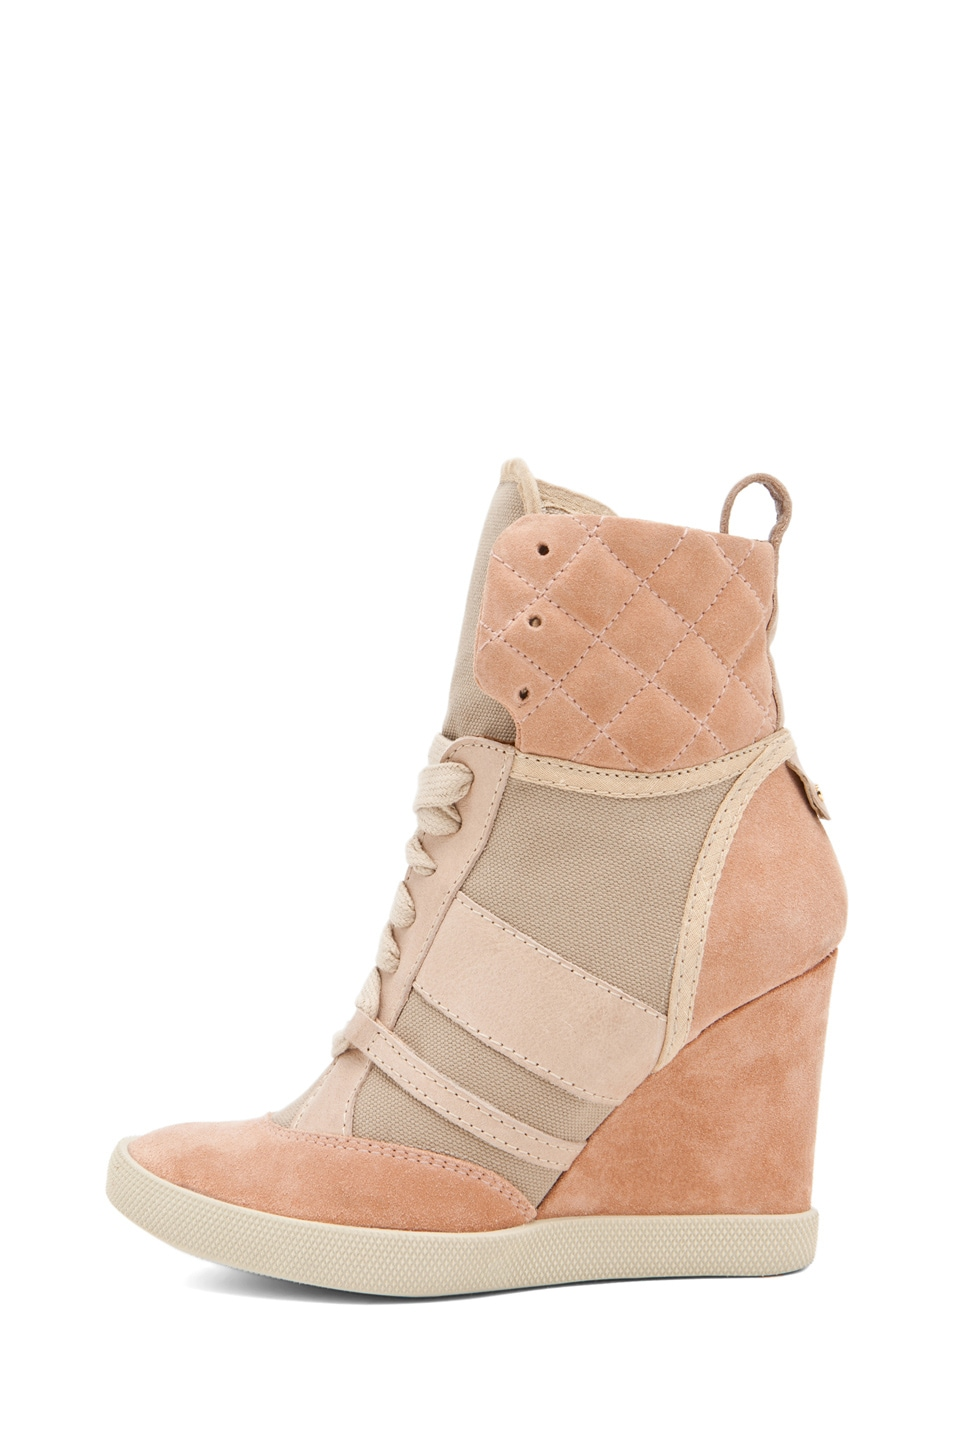 Image 1 of Chloe Wedge Sneaker in Camel